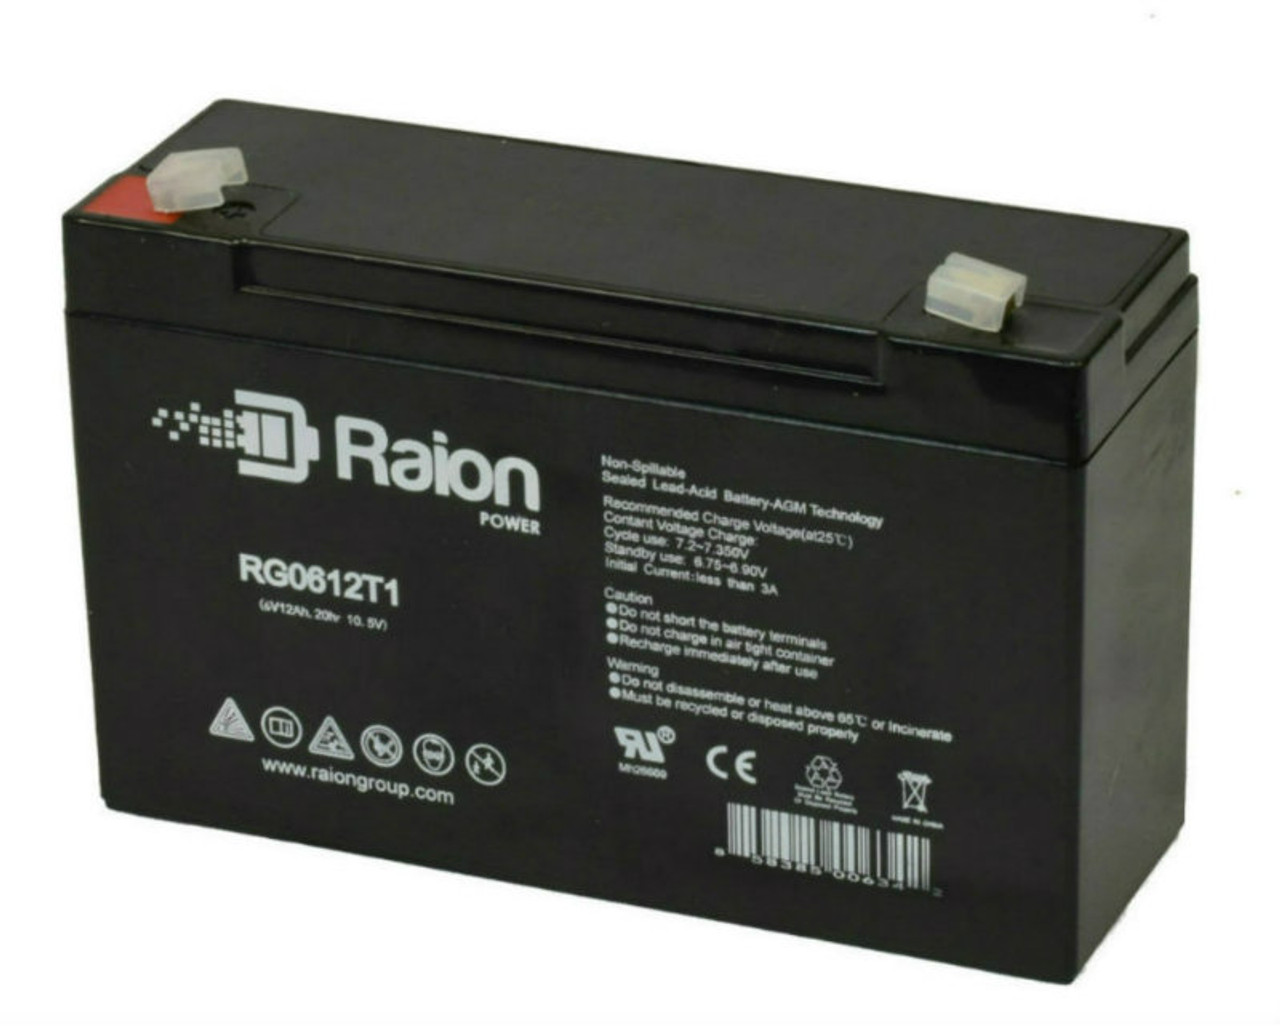 Raion Power RG06120T1 Replacement Battery Pack for Light Alarms 2S12E3 emergency light